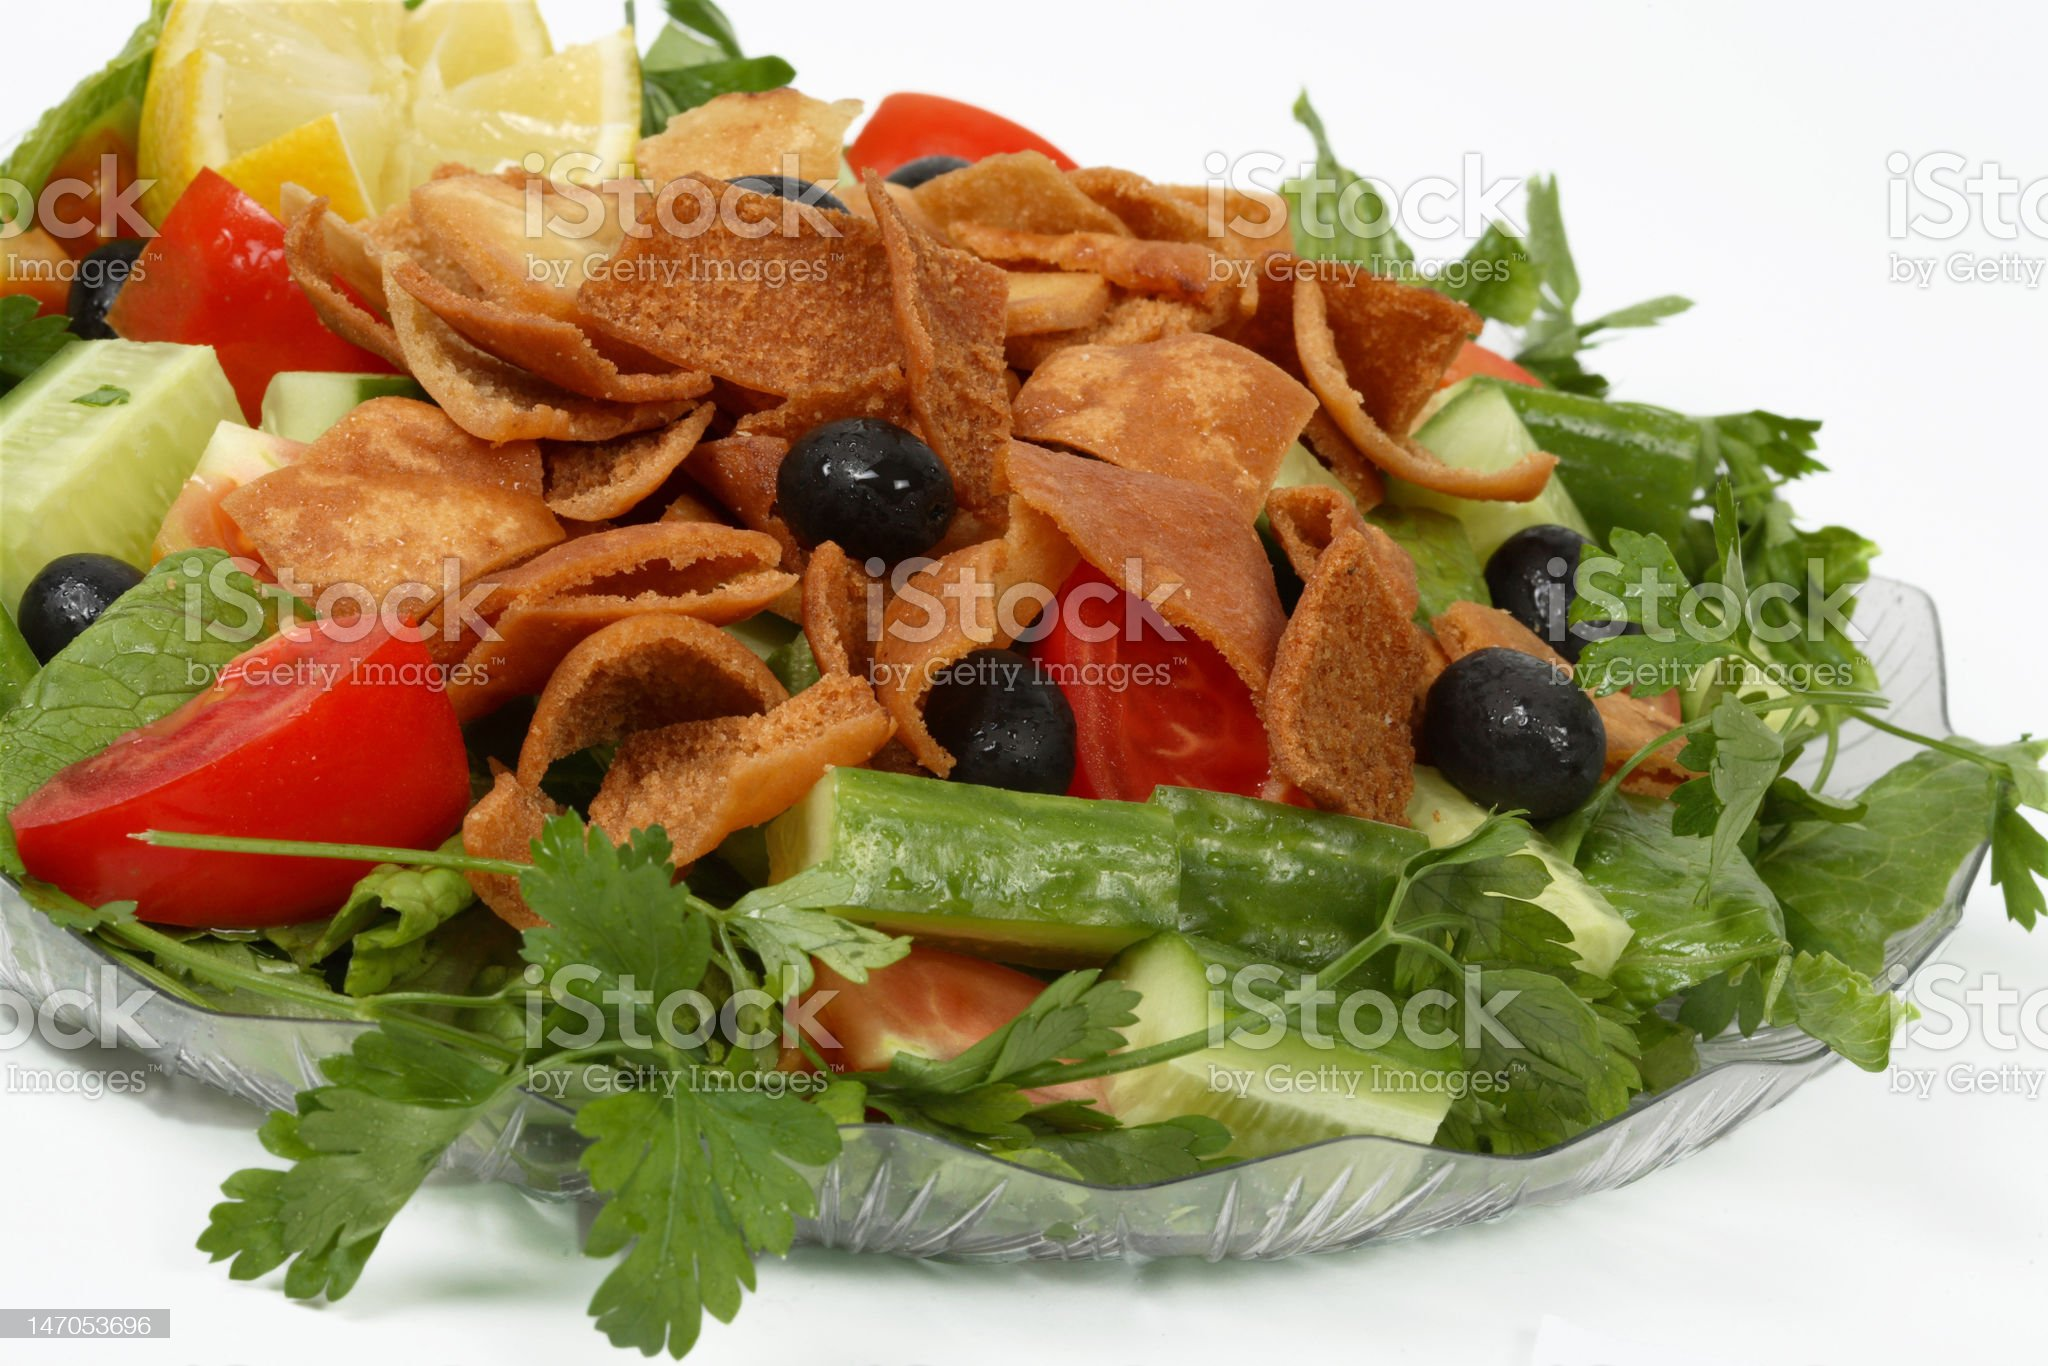 fatoush salad royalty-free stock photo